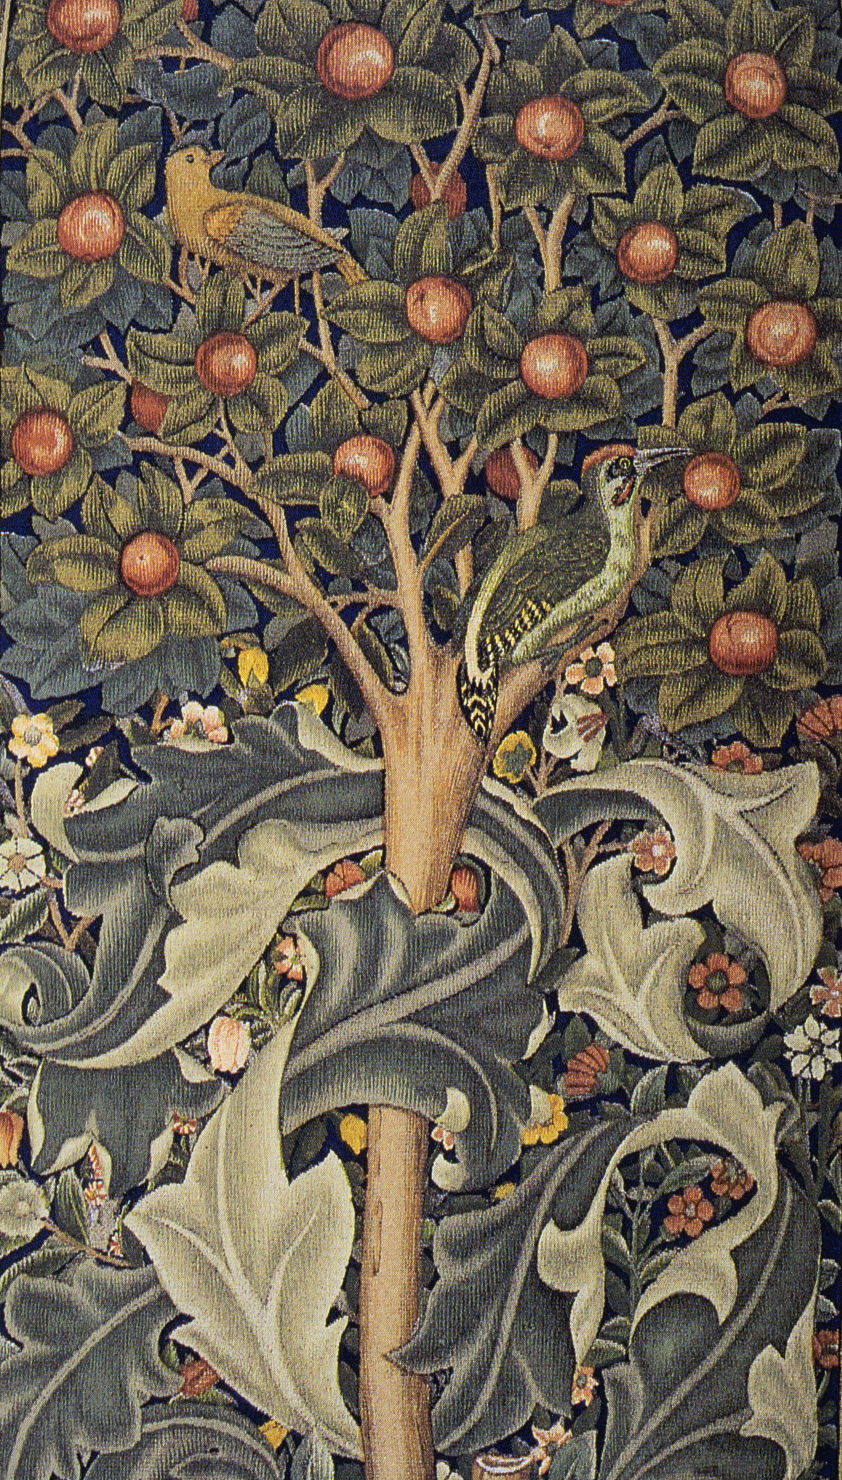 Detail of Woodpecker tapestry designed by William Morris (1885)